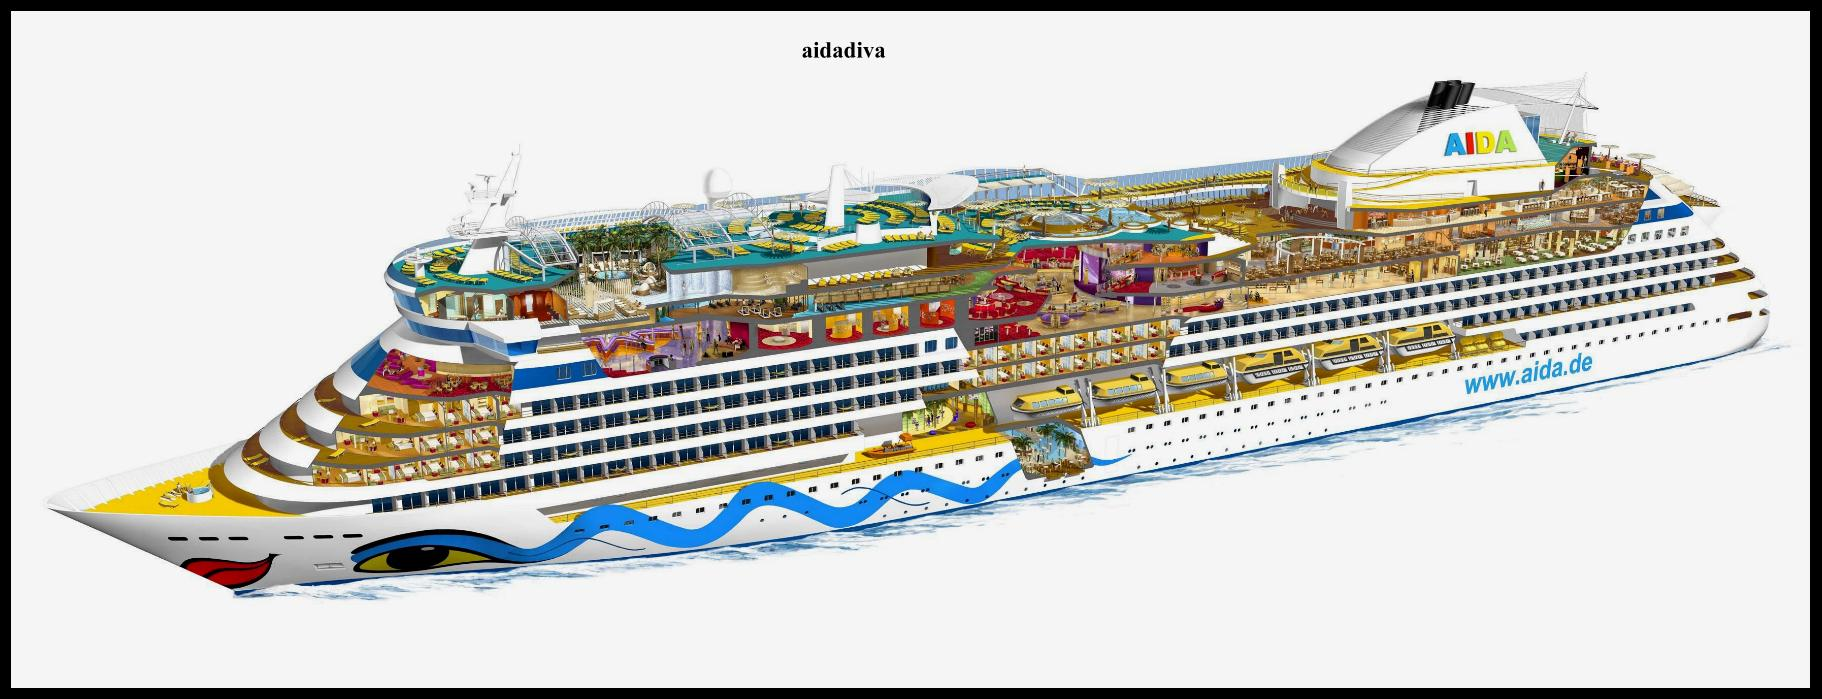 How To Cruise With Family Of 6 Cruise Port Canaveral September 2014 3 Day Cruises From Ft